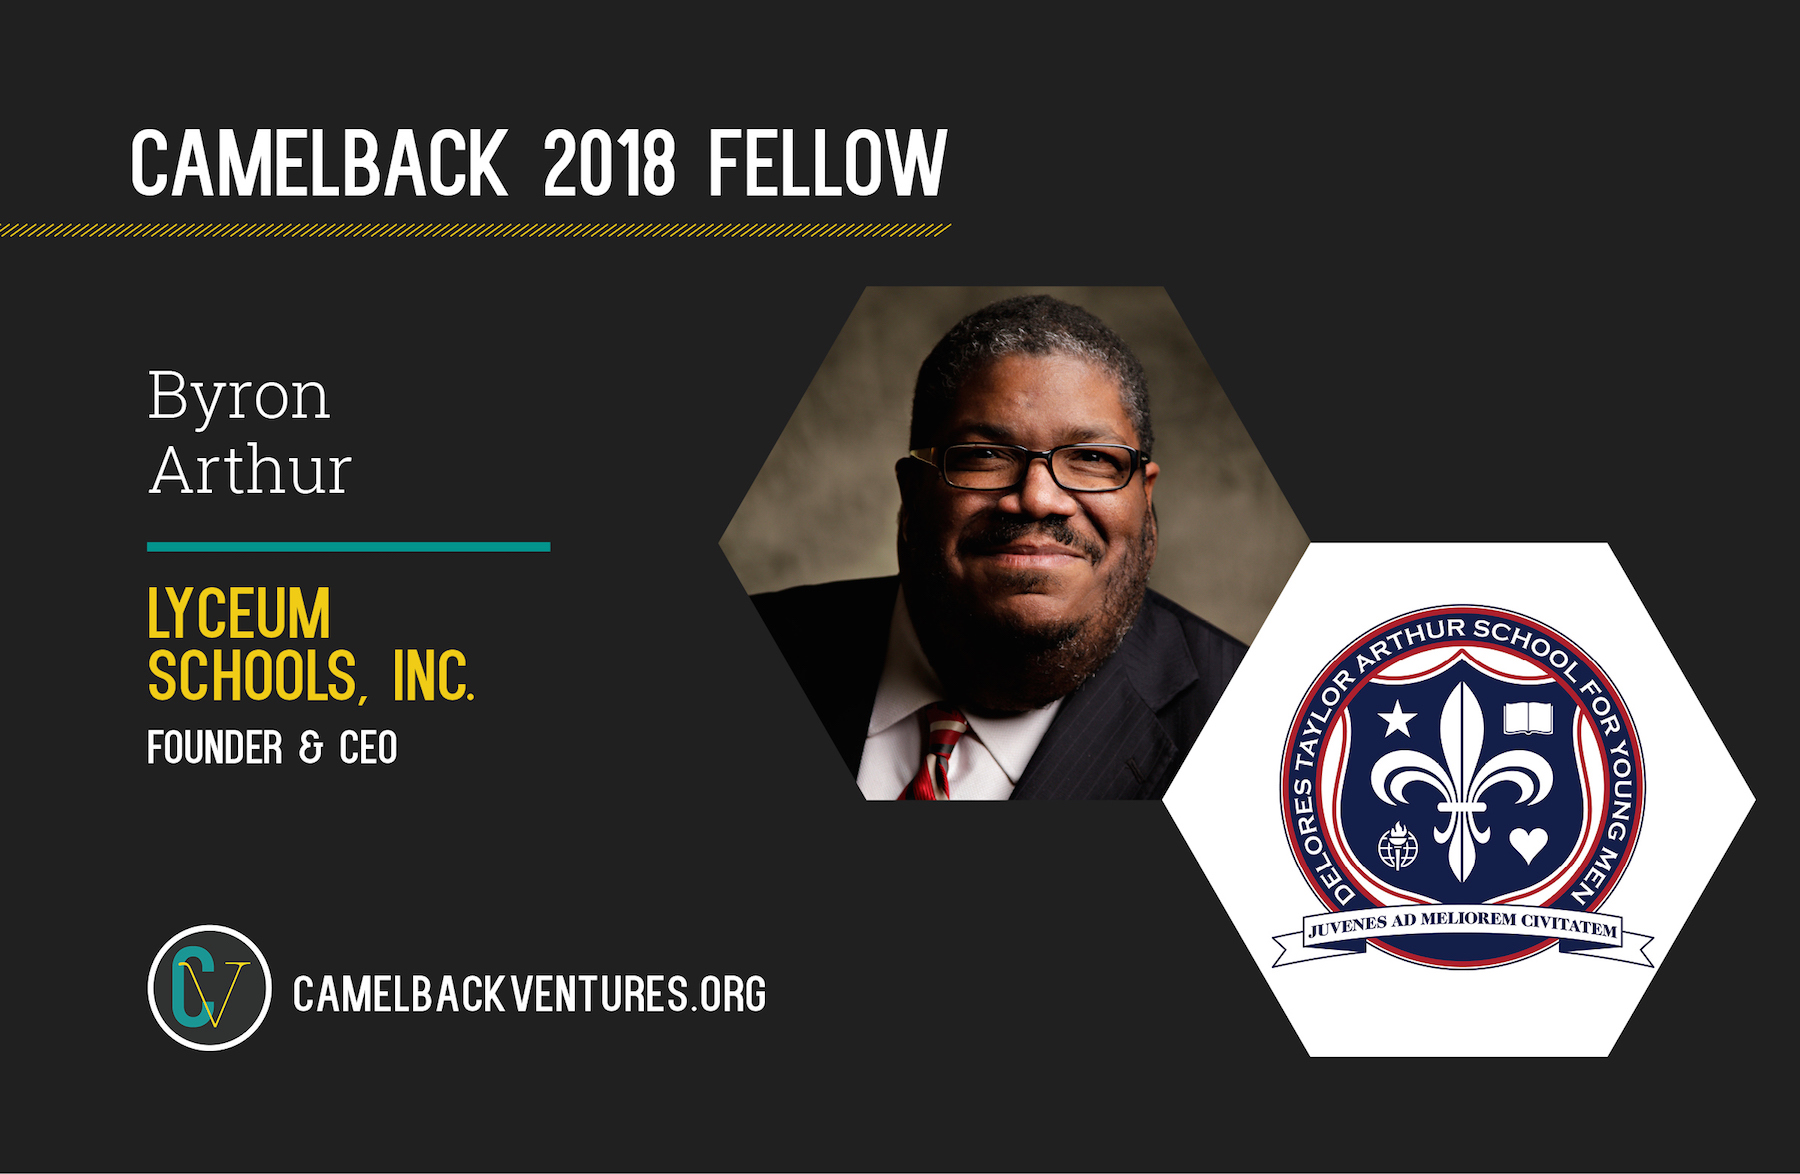 2018camelbackfellows_byron.jpg